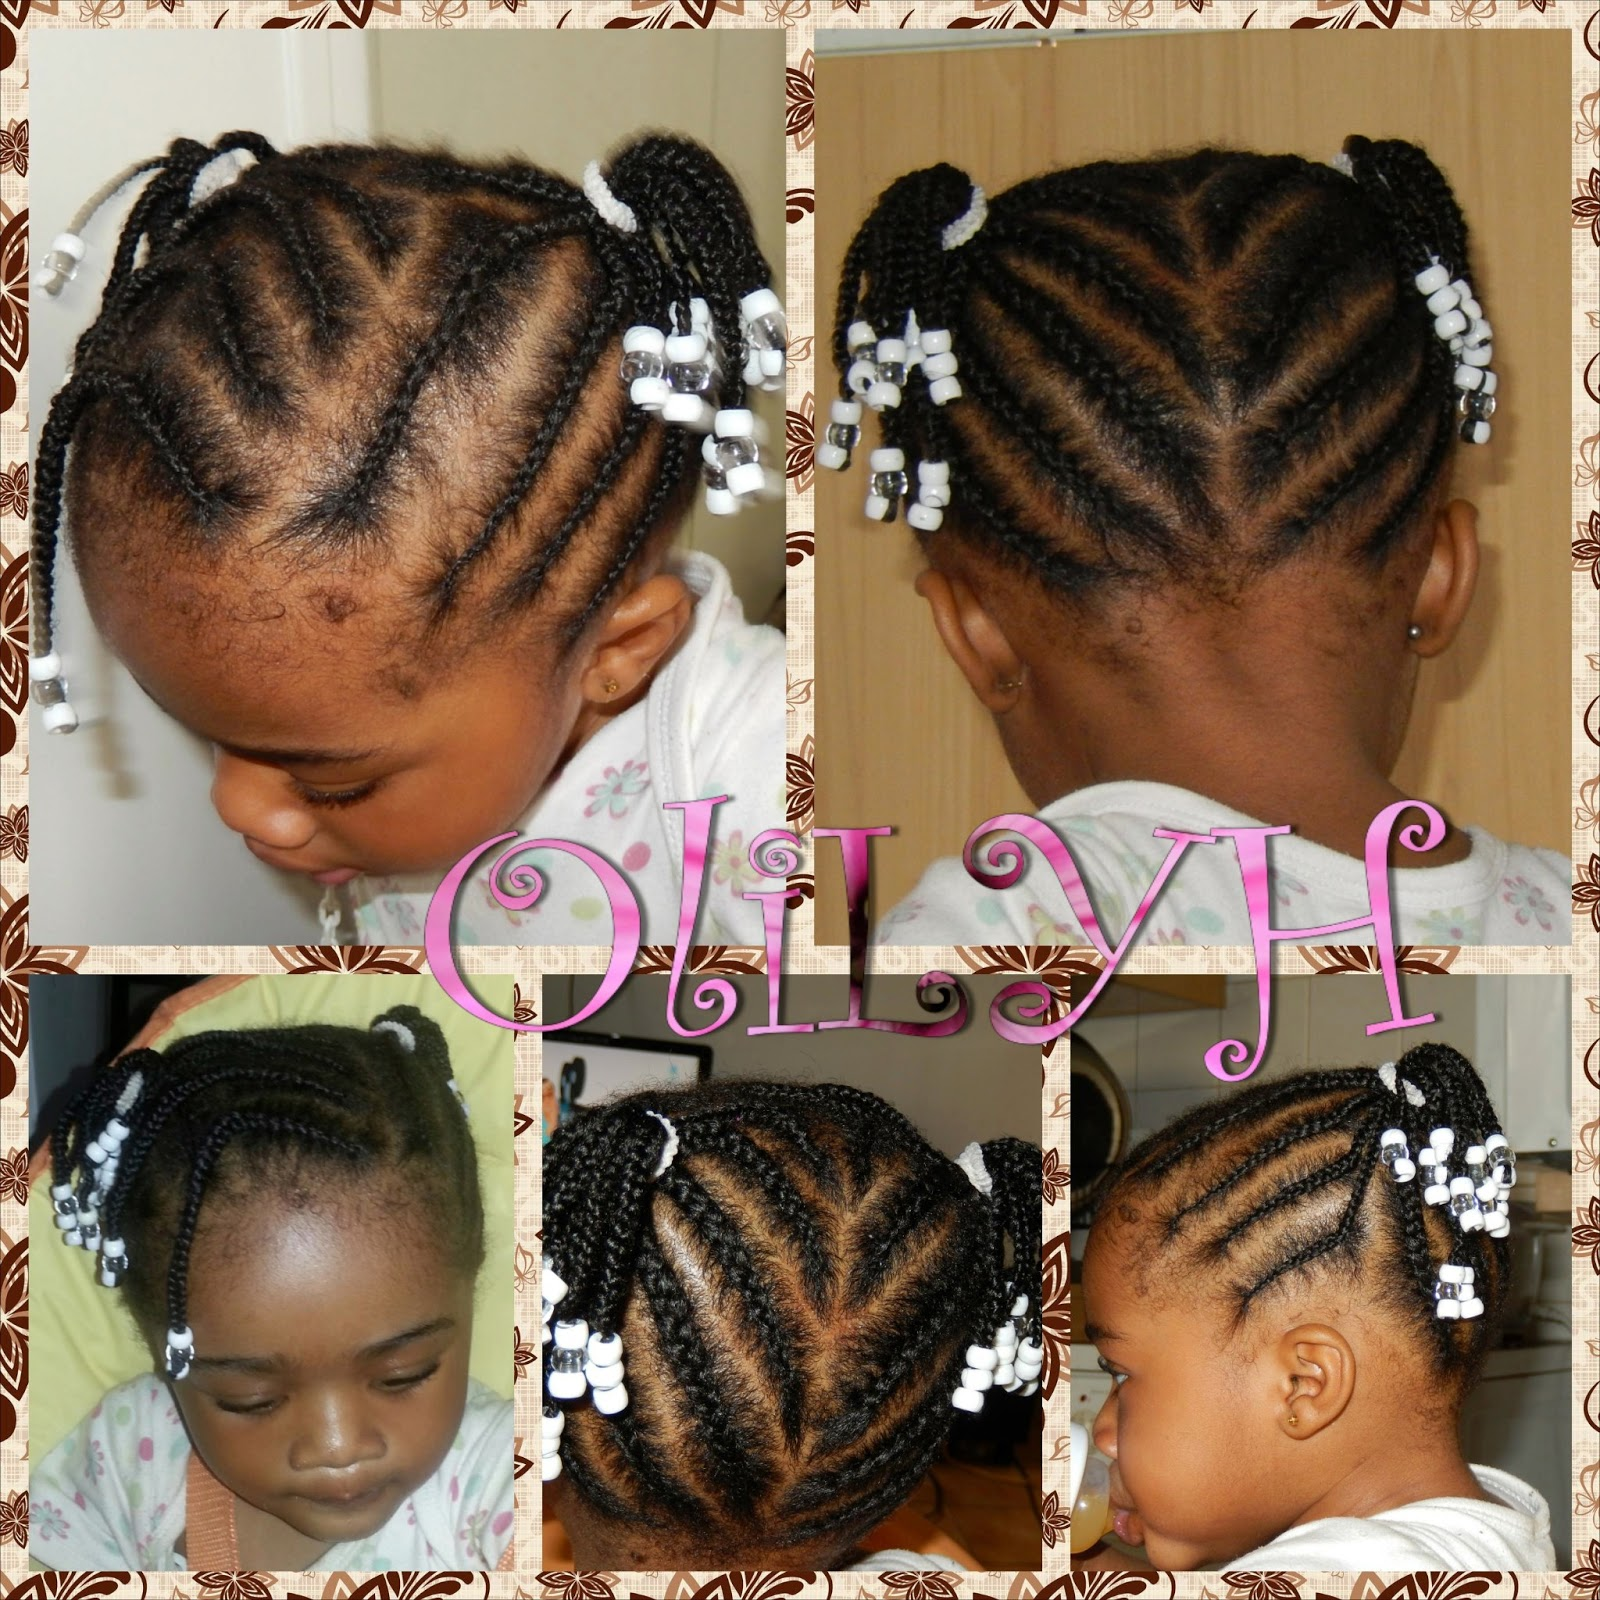 OliLYH - Olivia Loves Your Hair: Coiffures sur enfant